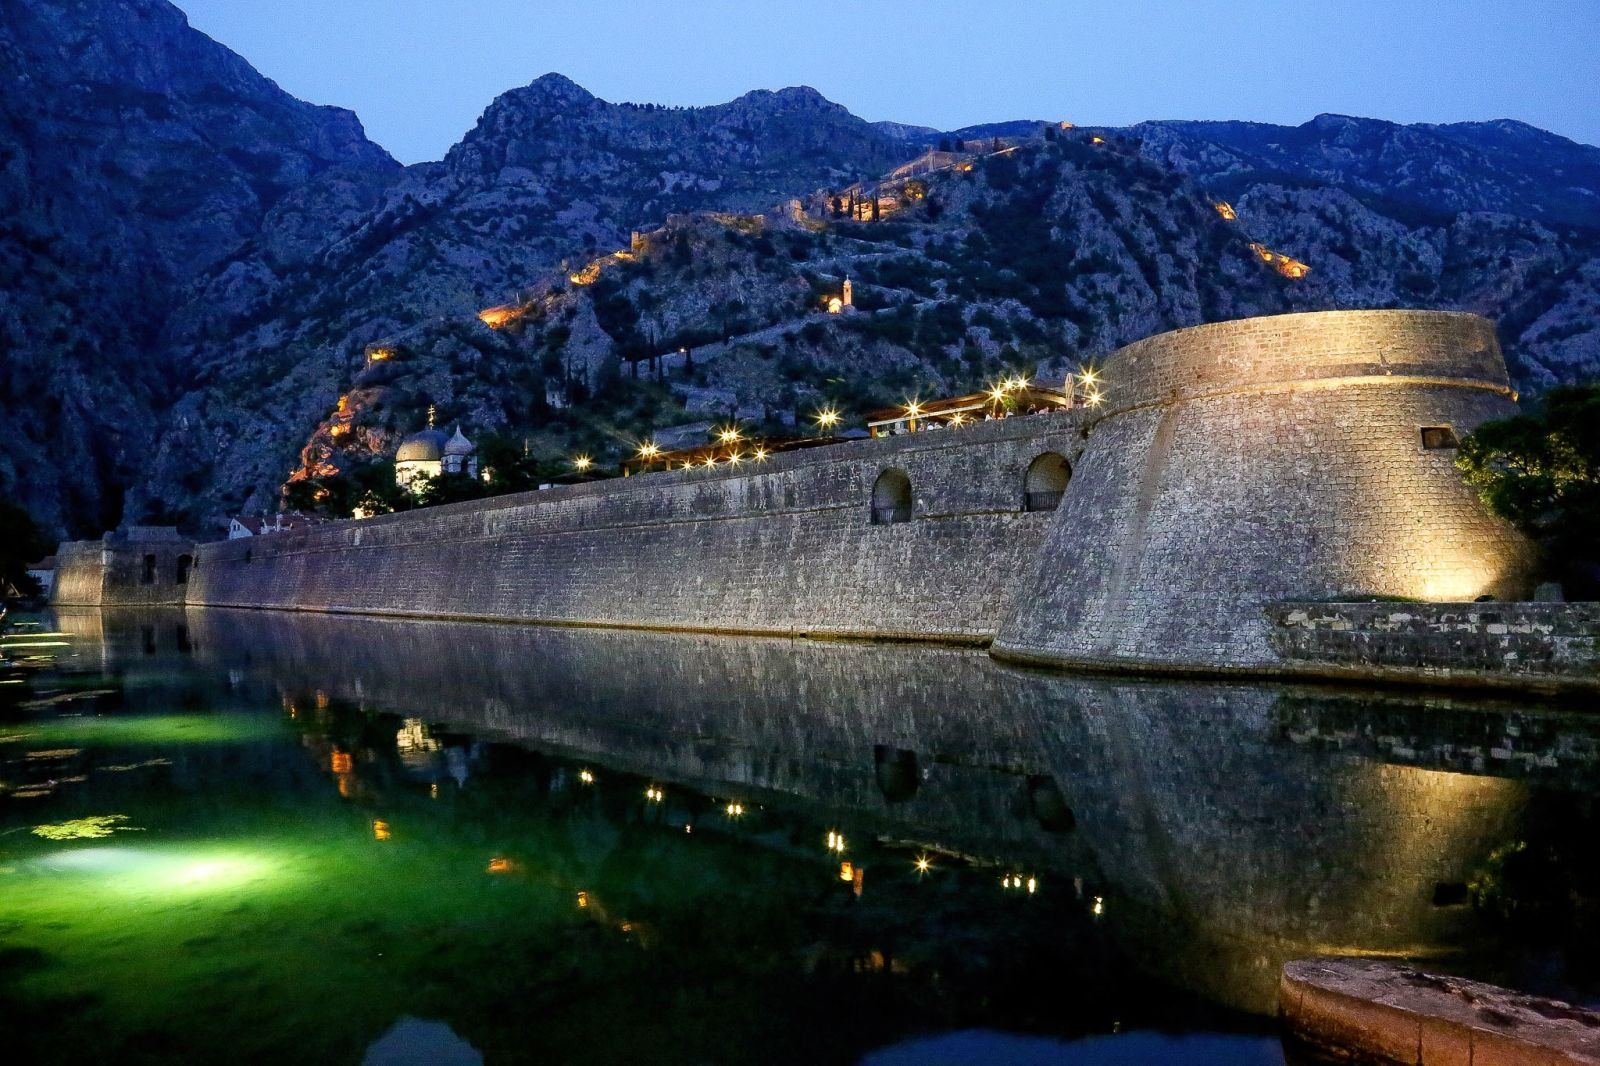 -images-excursions-pearls-of-montenegro--montenegro-day-tour-from-dubrovnik09.jpg